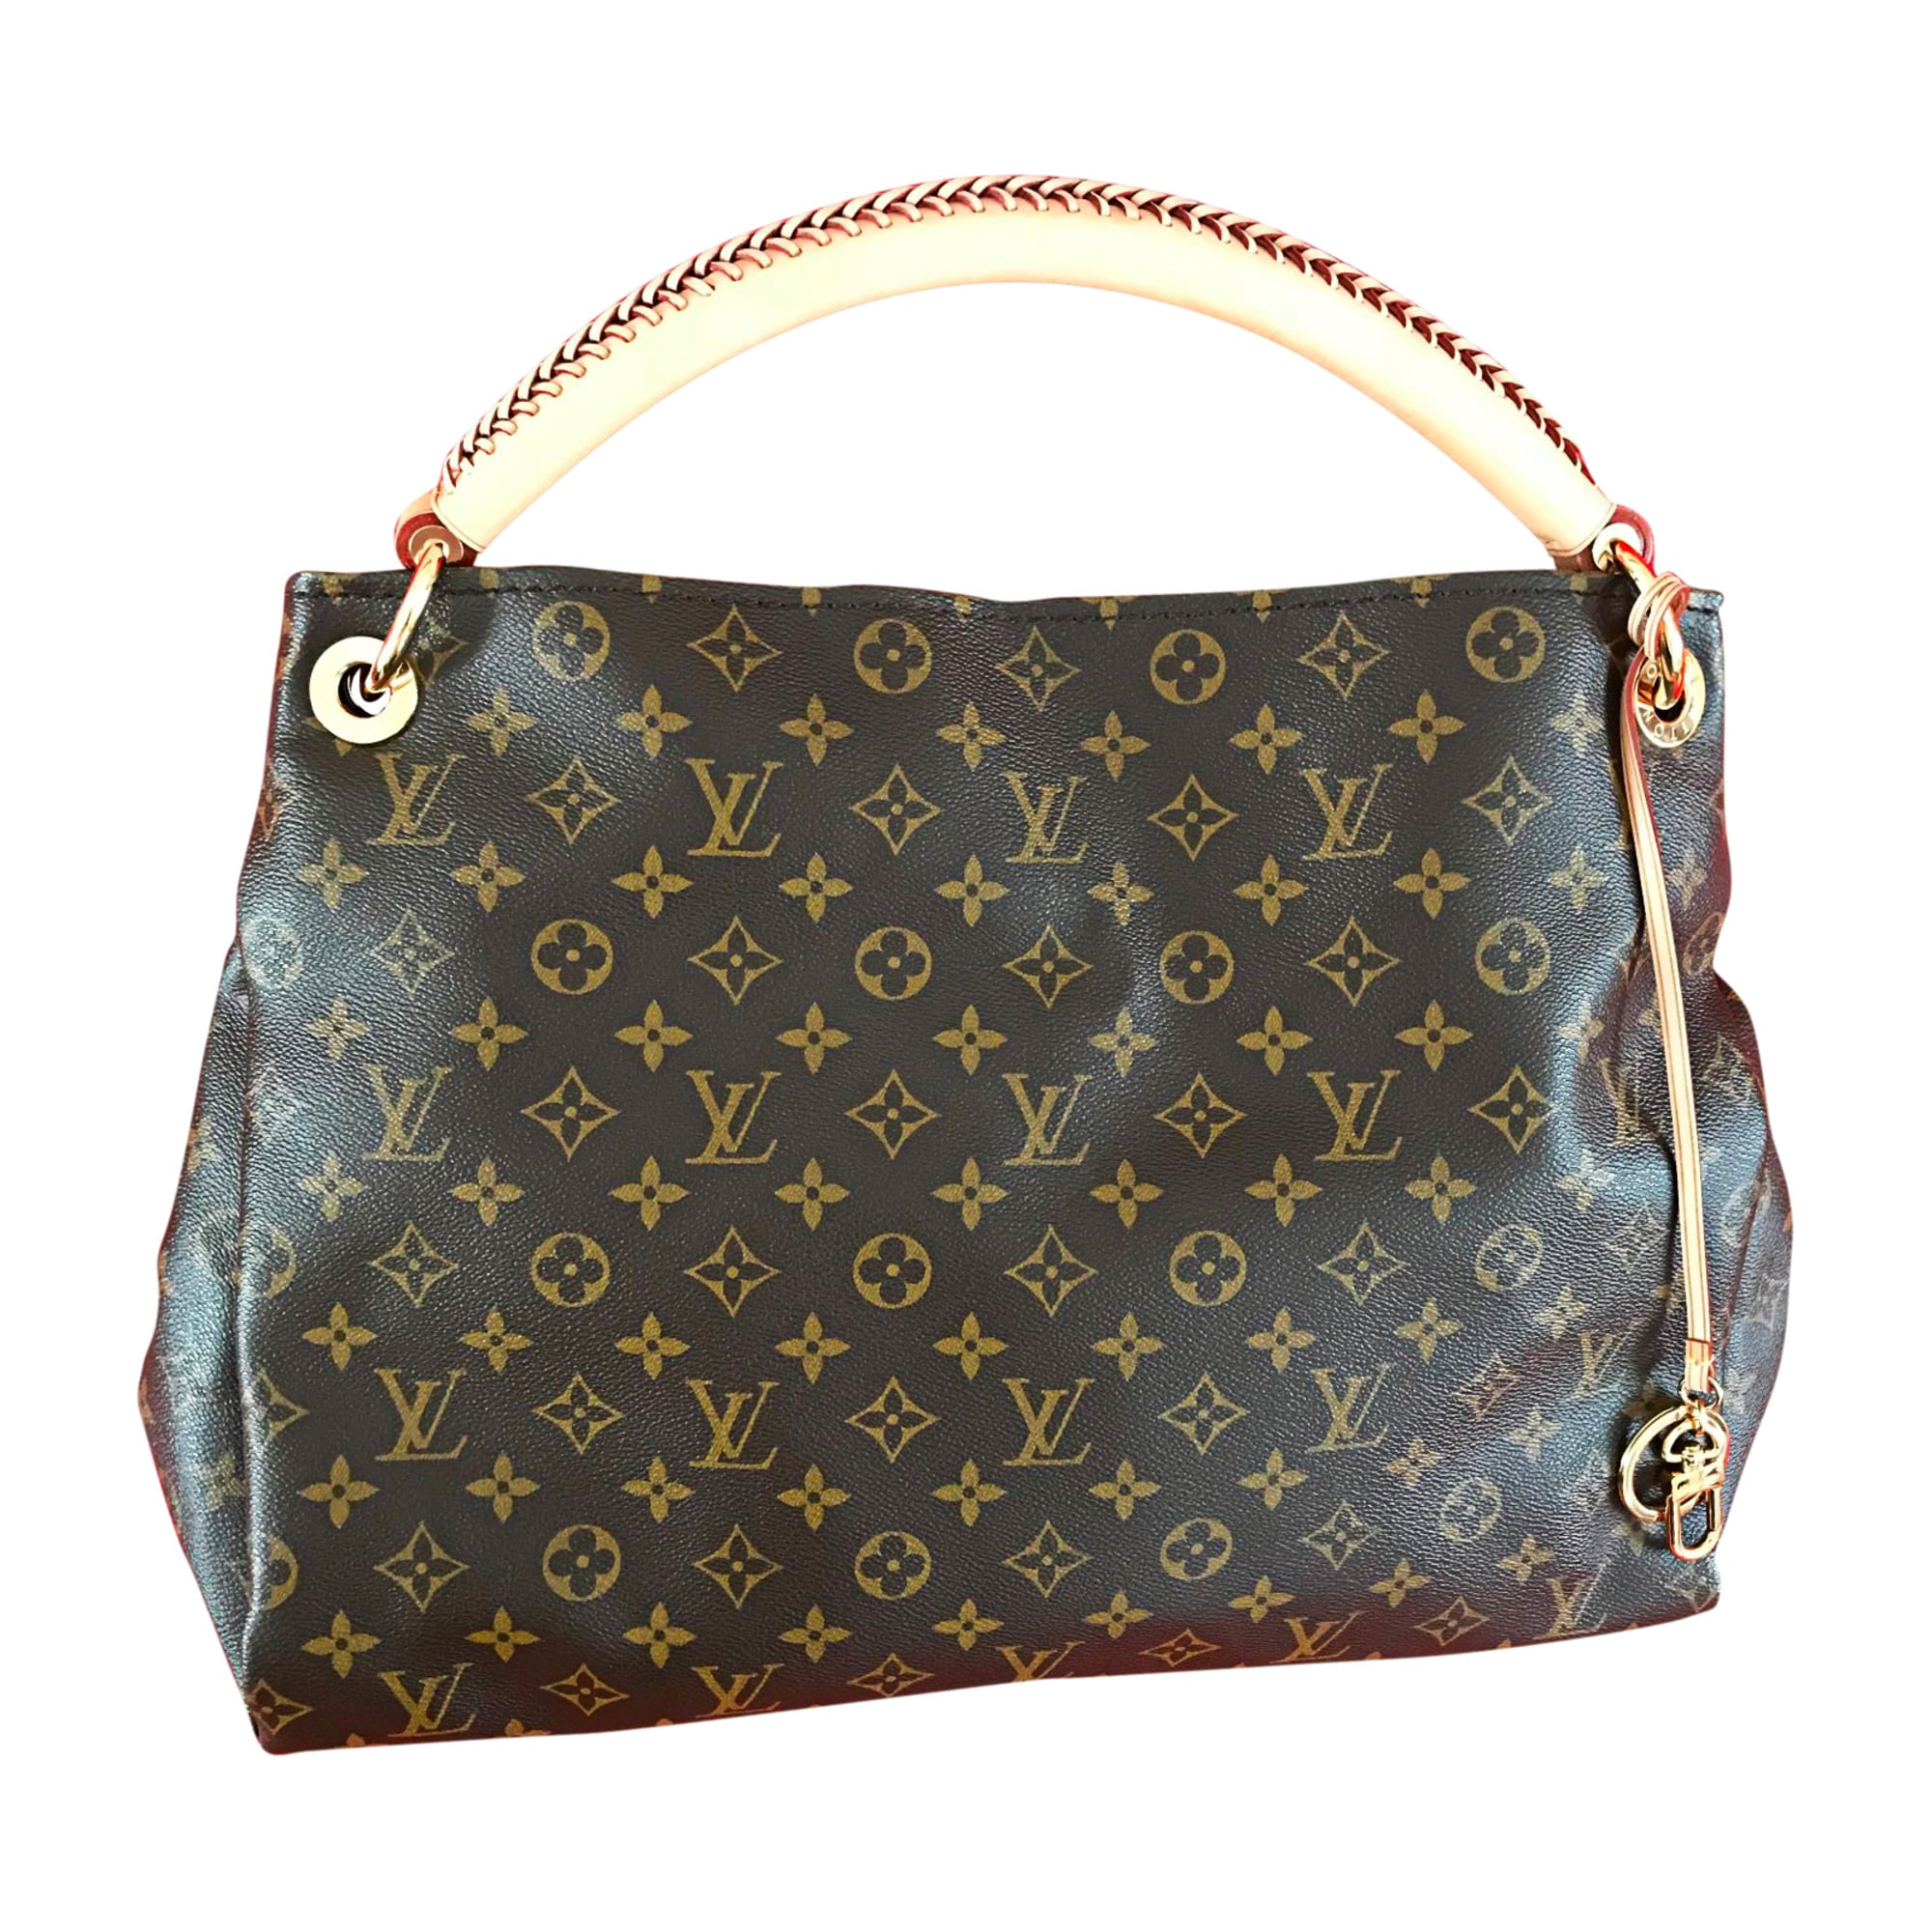 2996d0305a Borsa a tracolla in pelle LOUIS VUITTON artsy marrone - 7753267